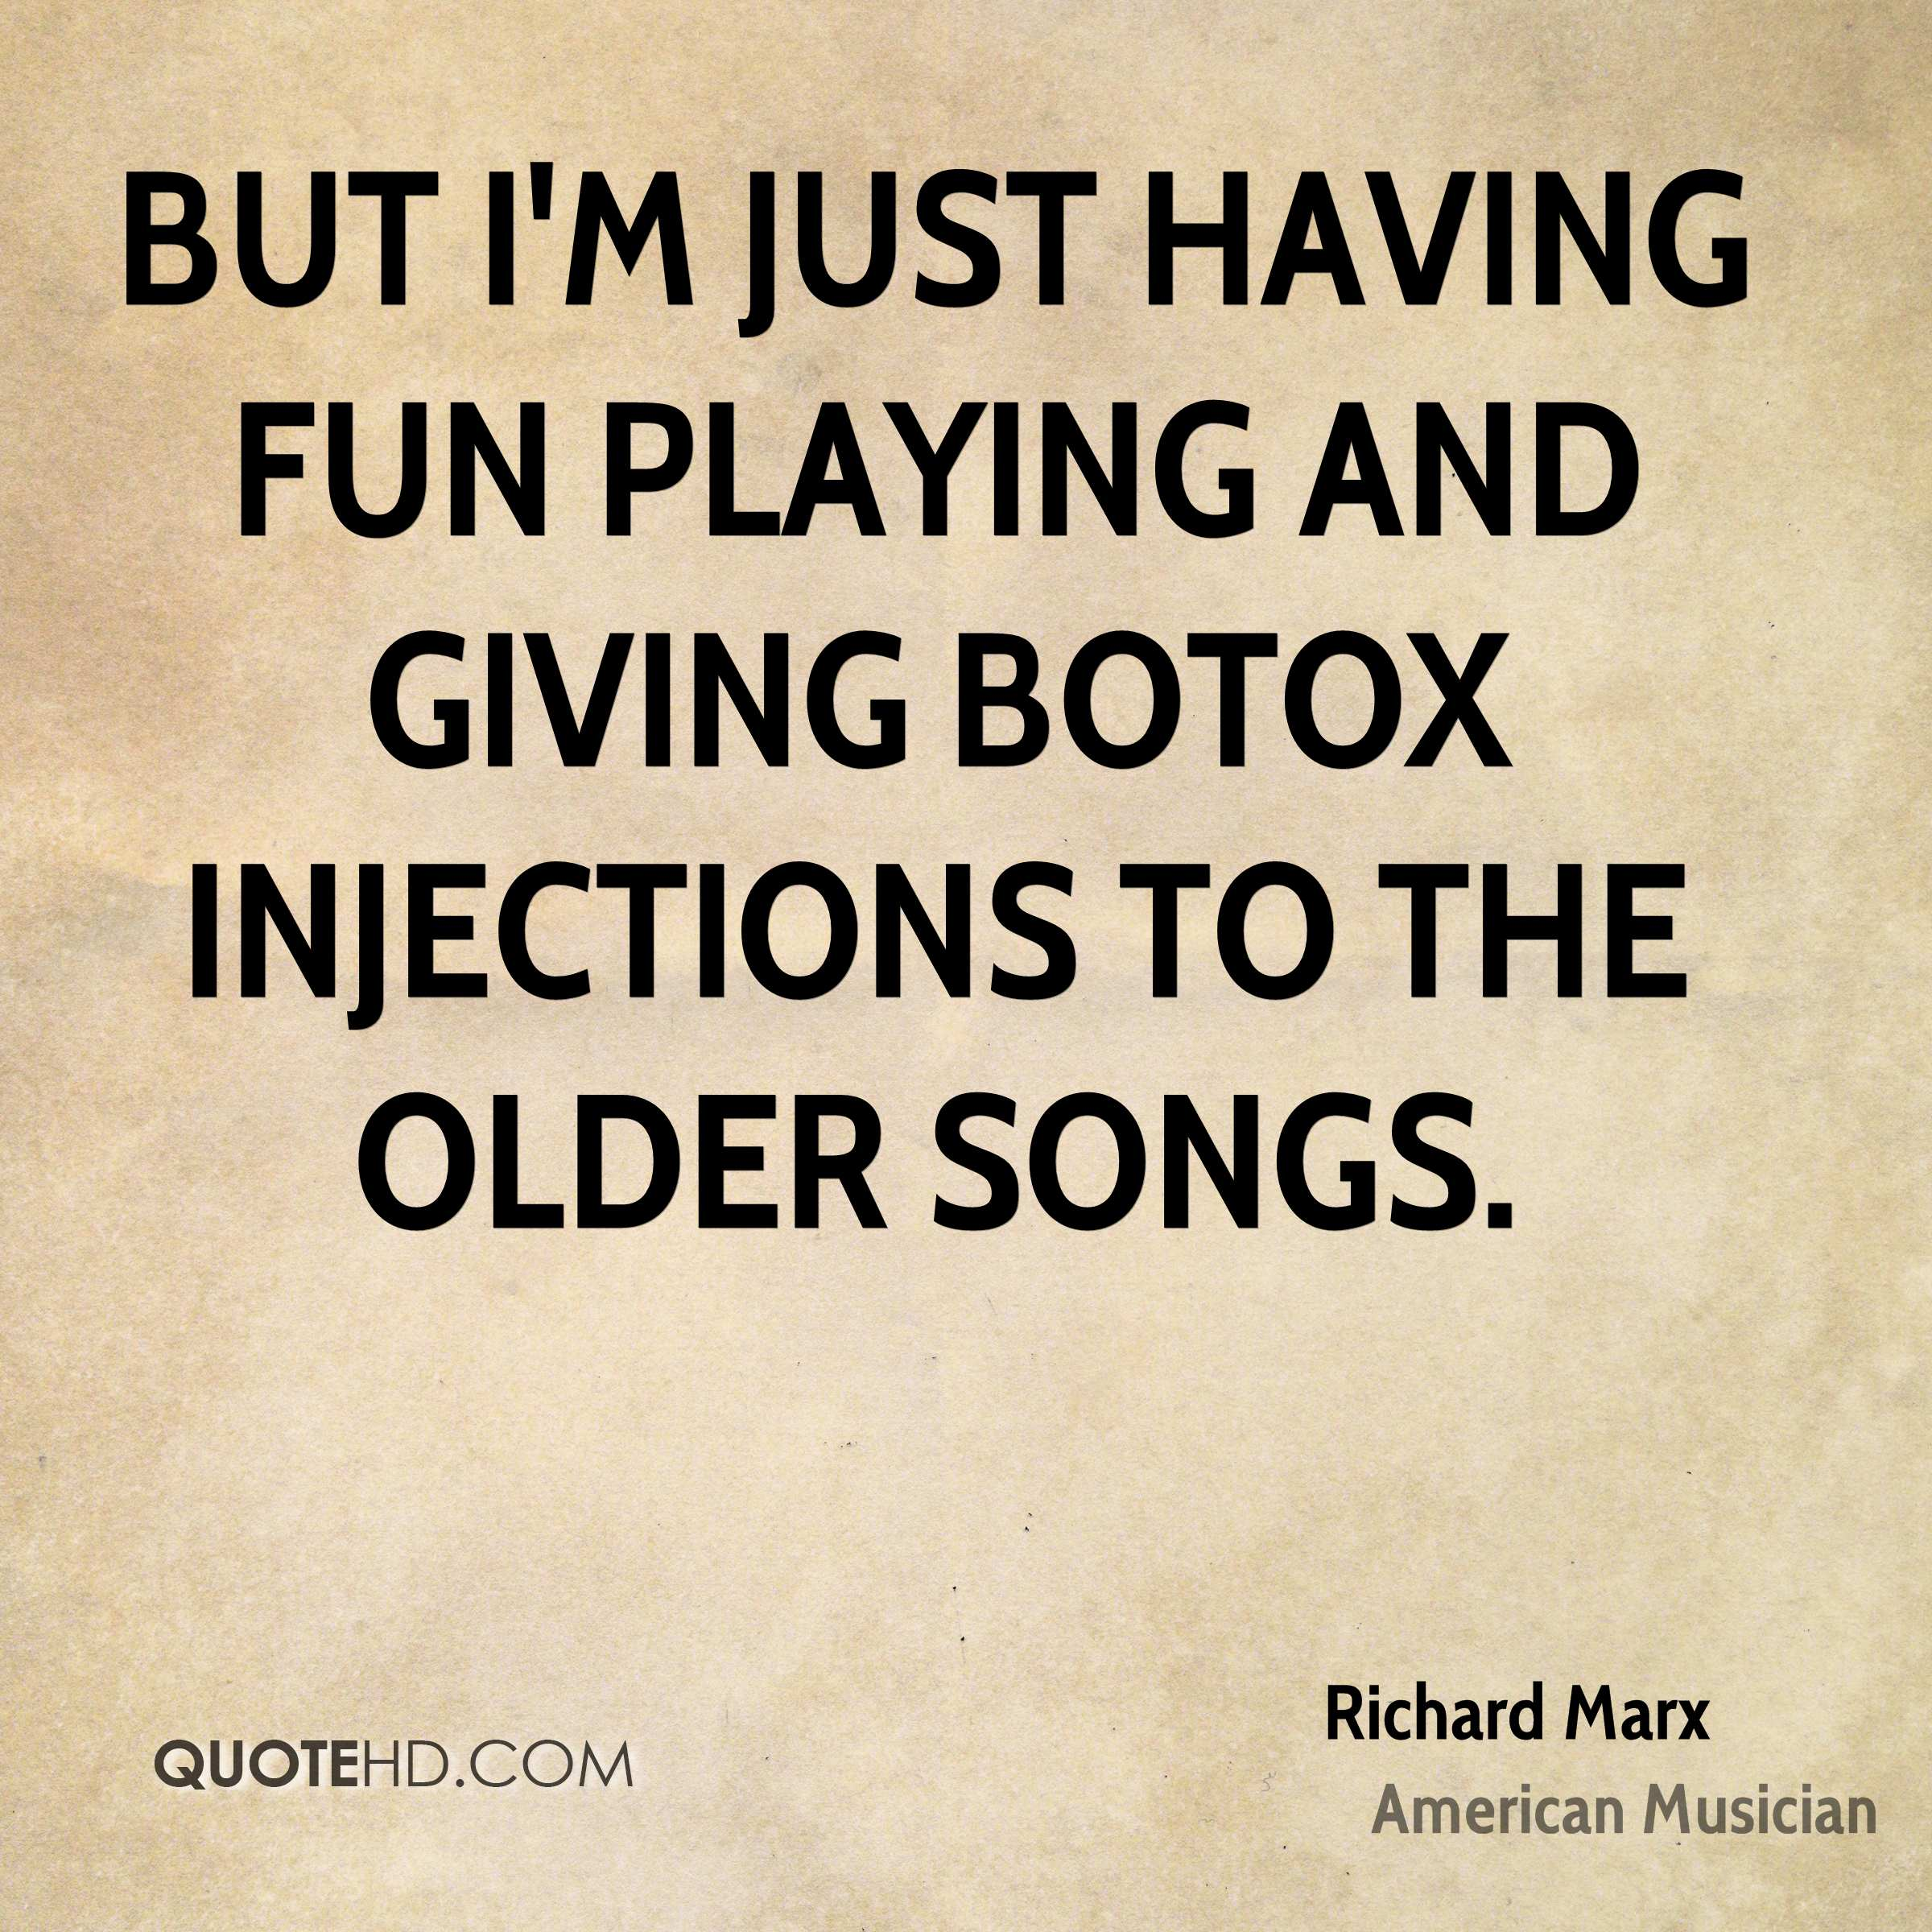 But I'm just having fun playing and giving Botox injections to the older songs.